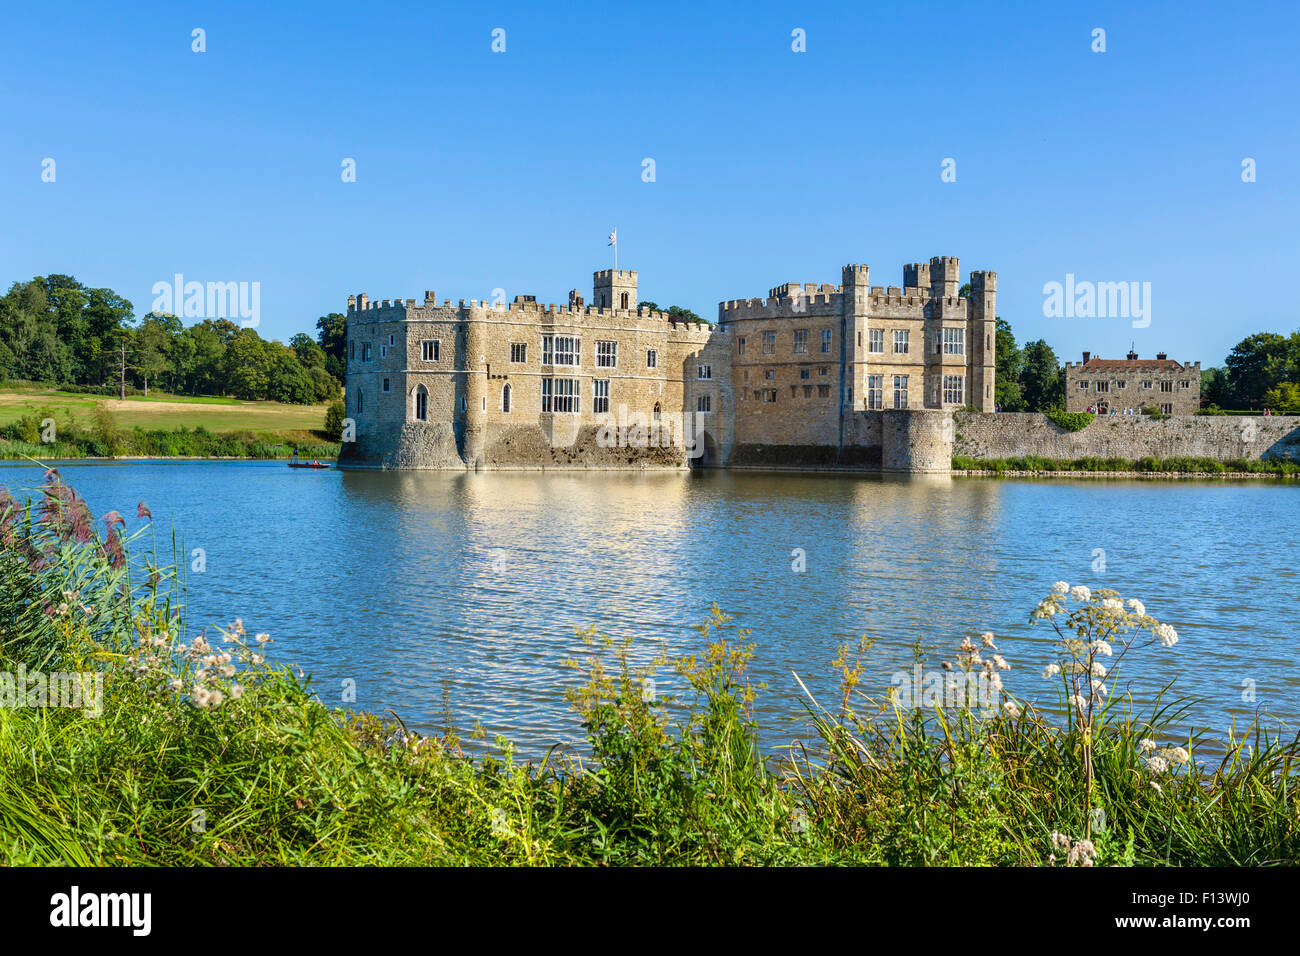 Leeds Castle, near Maidstone, Kent, England, UK - Stock Image